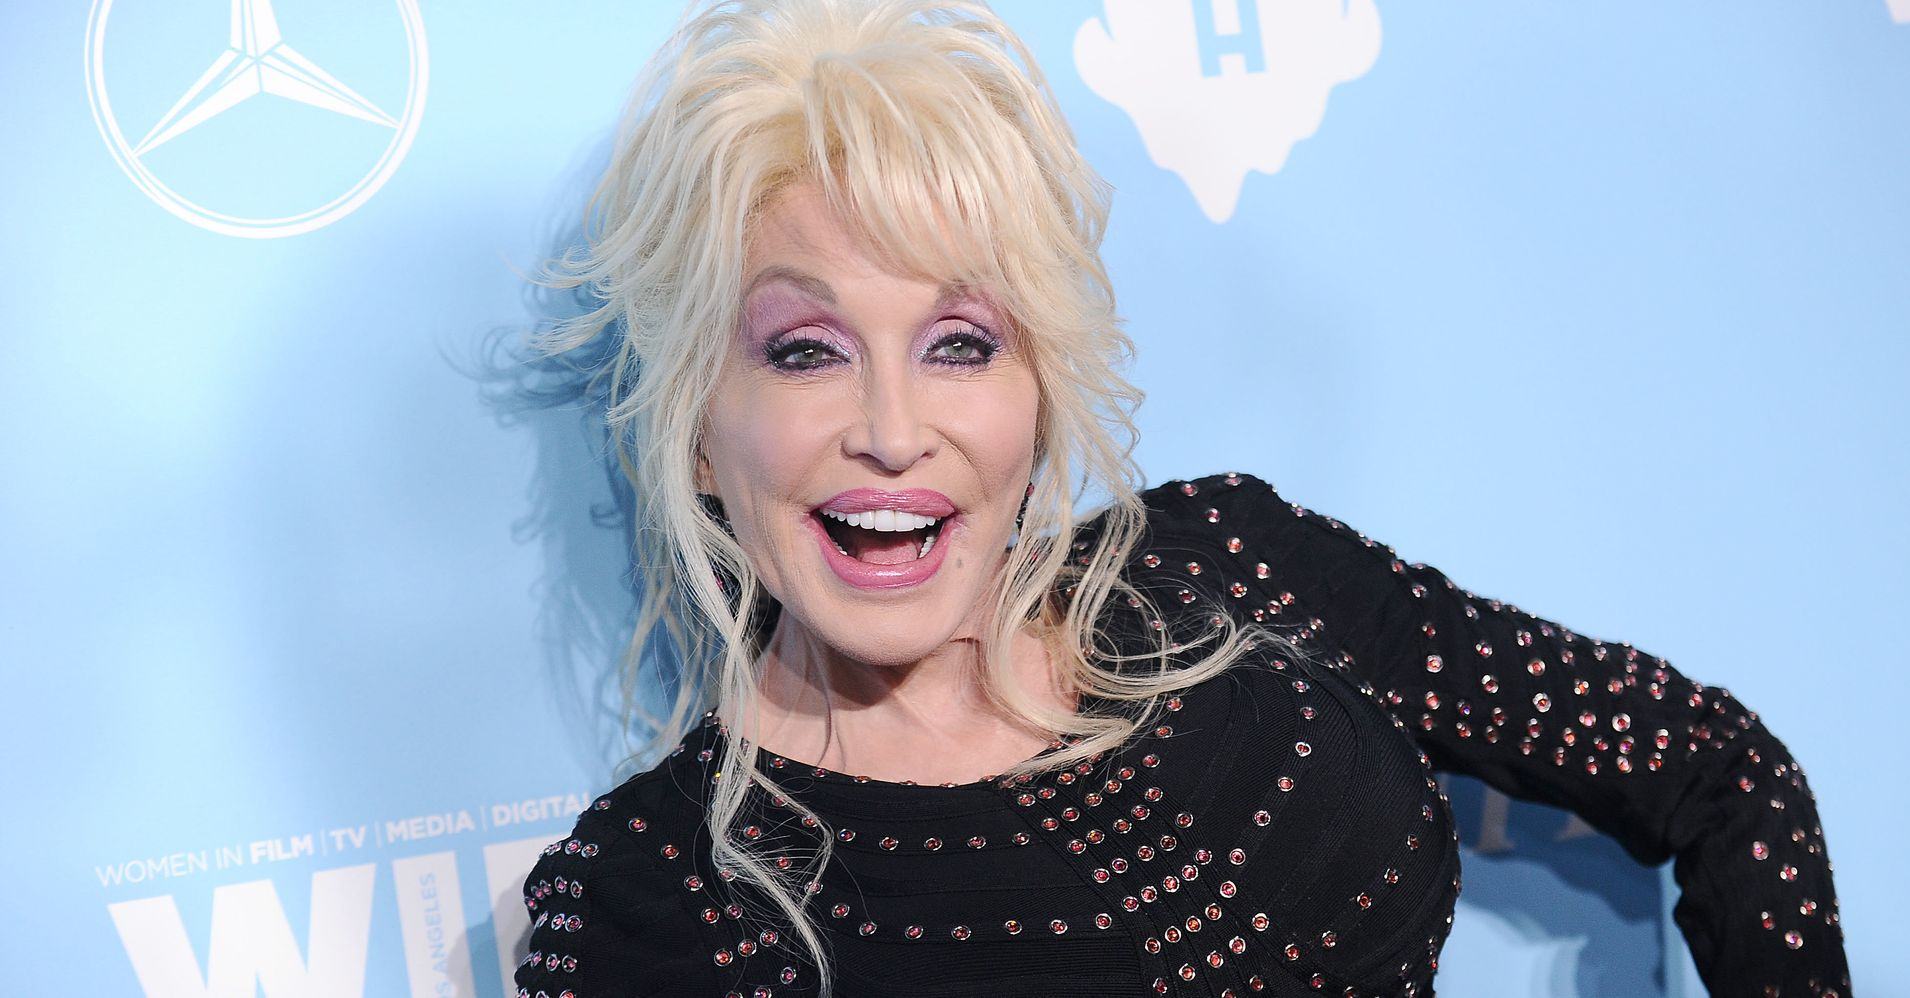 Dolly Parton Confirms Adorable Story That Had Twitter On The Edge Of Its Seat